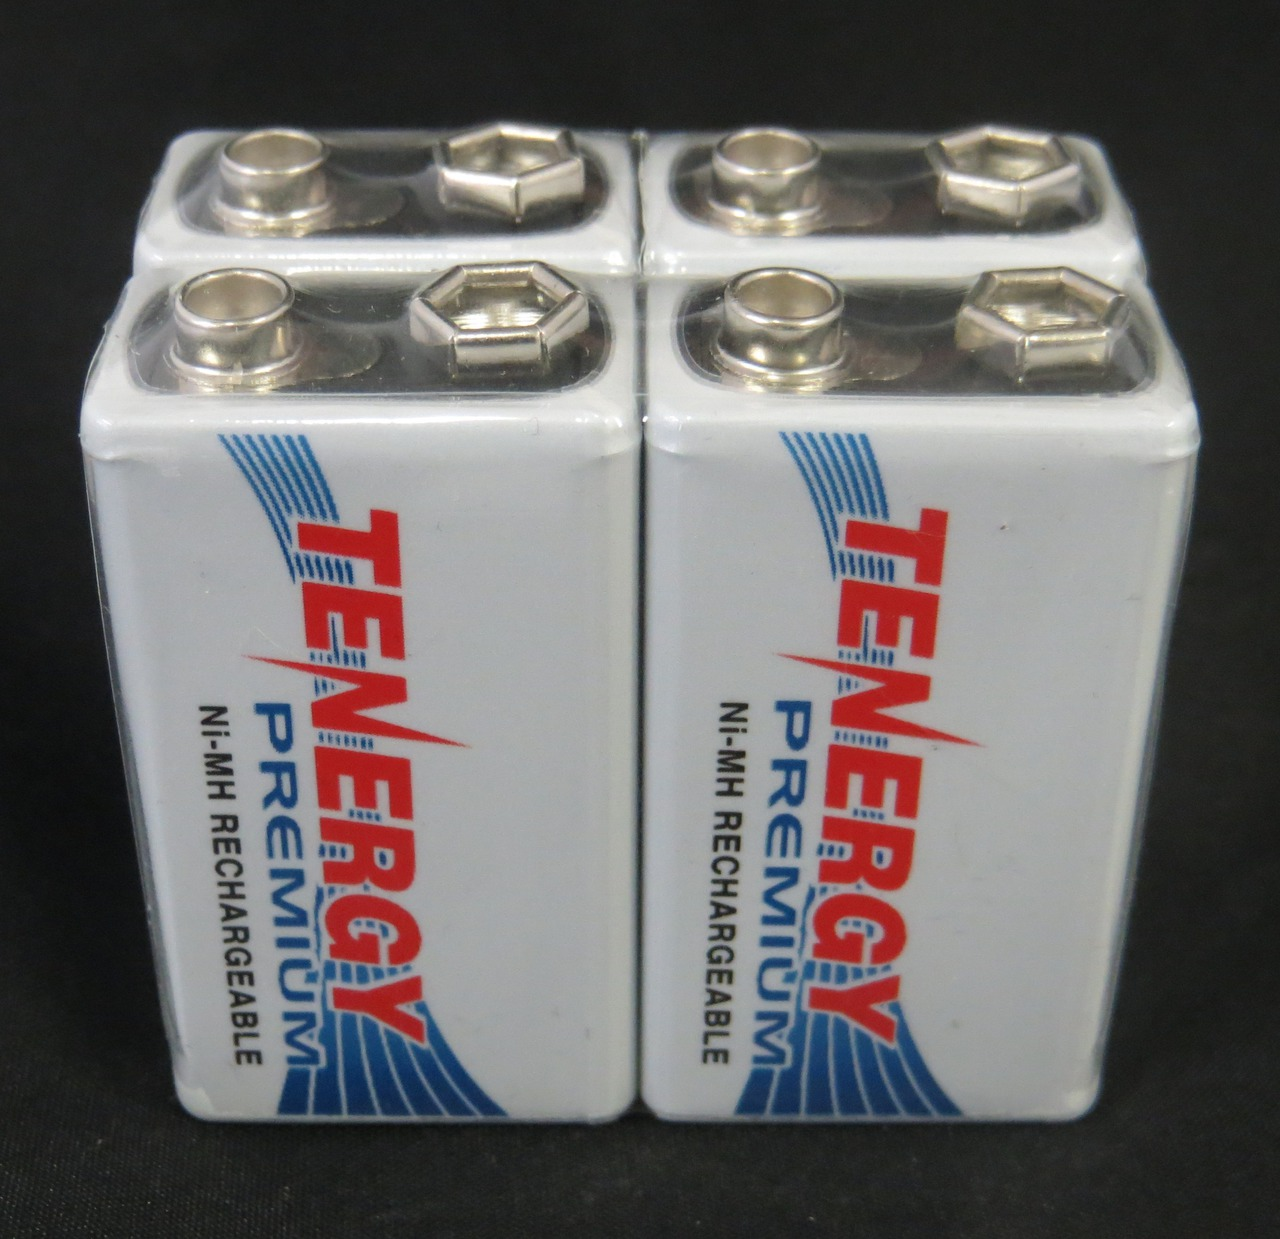 Tenergy Premium 9V NiMH 200mAh MAh Rechargeable Batteries - 8 Pack + FREE SHIPPING!